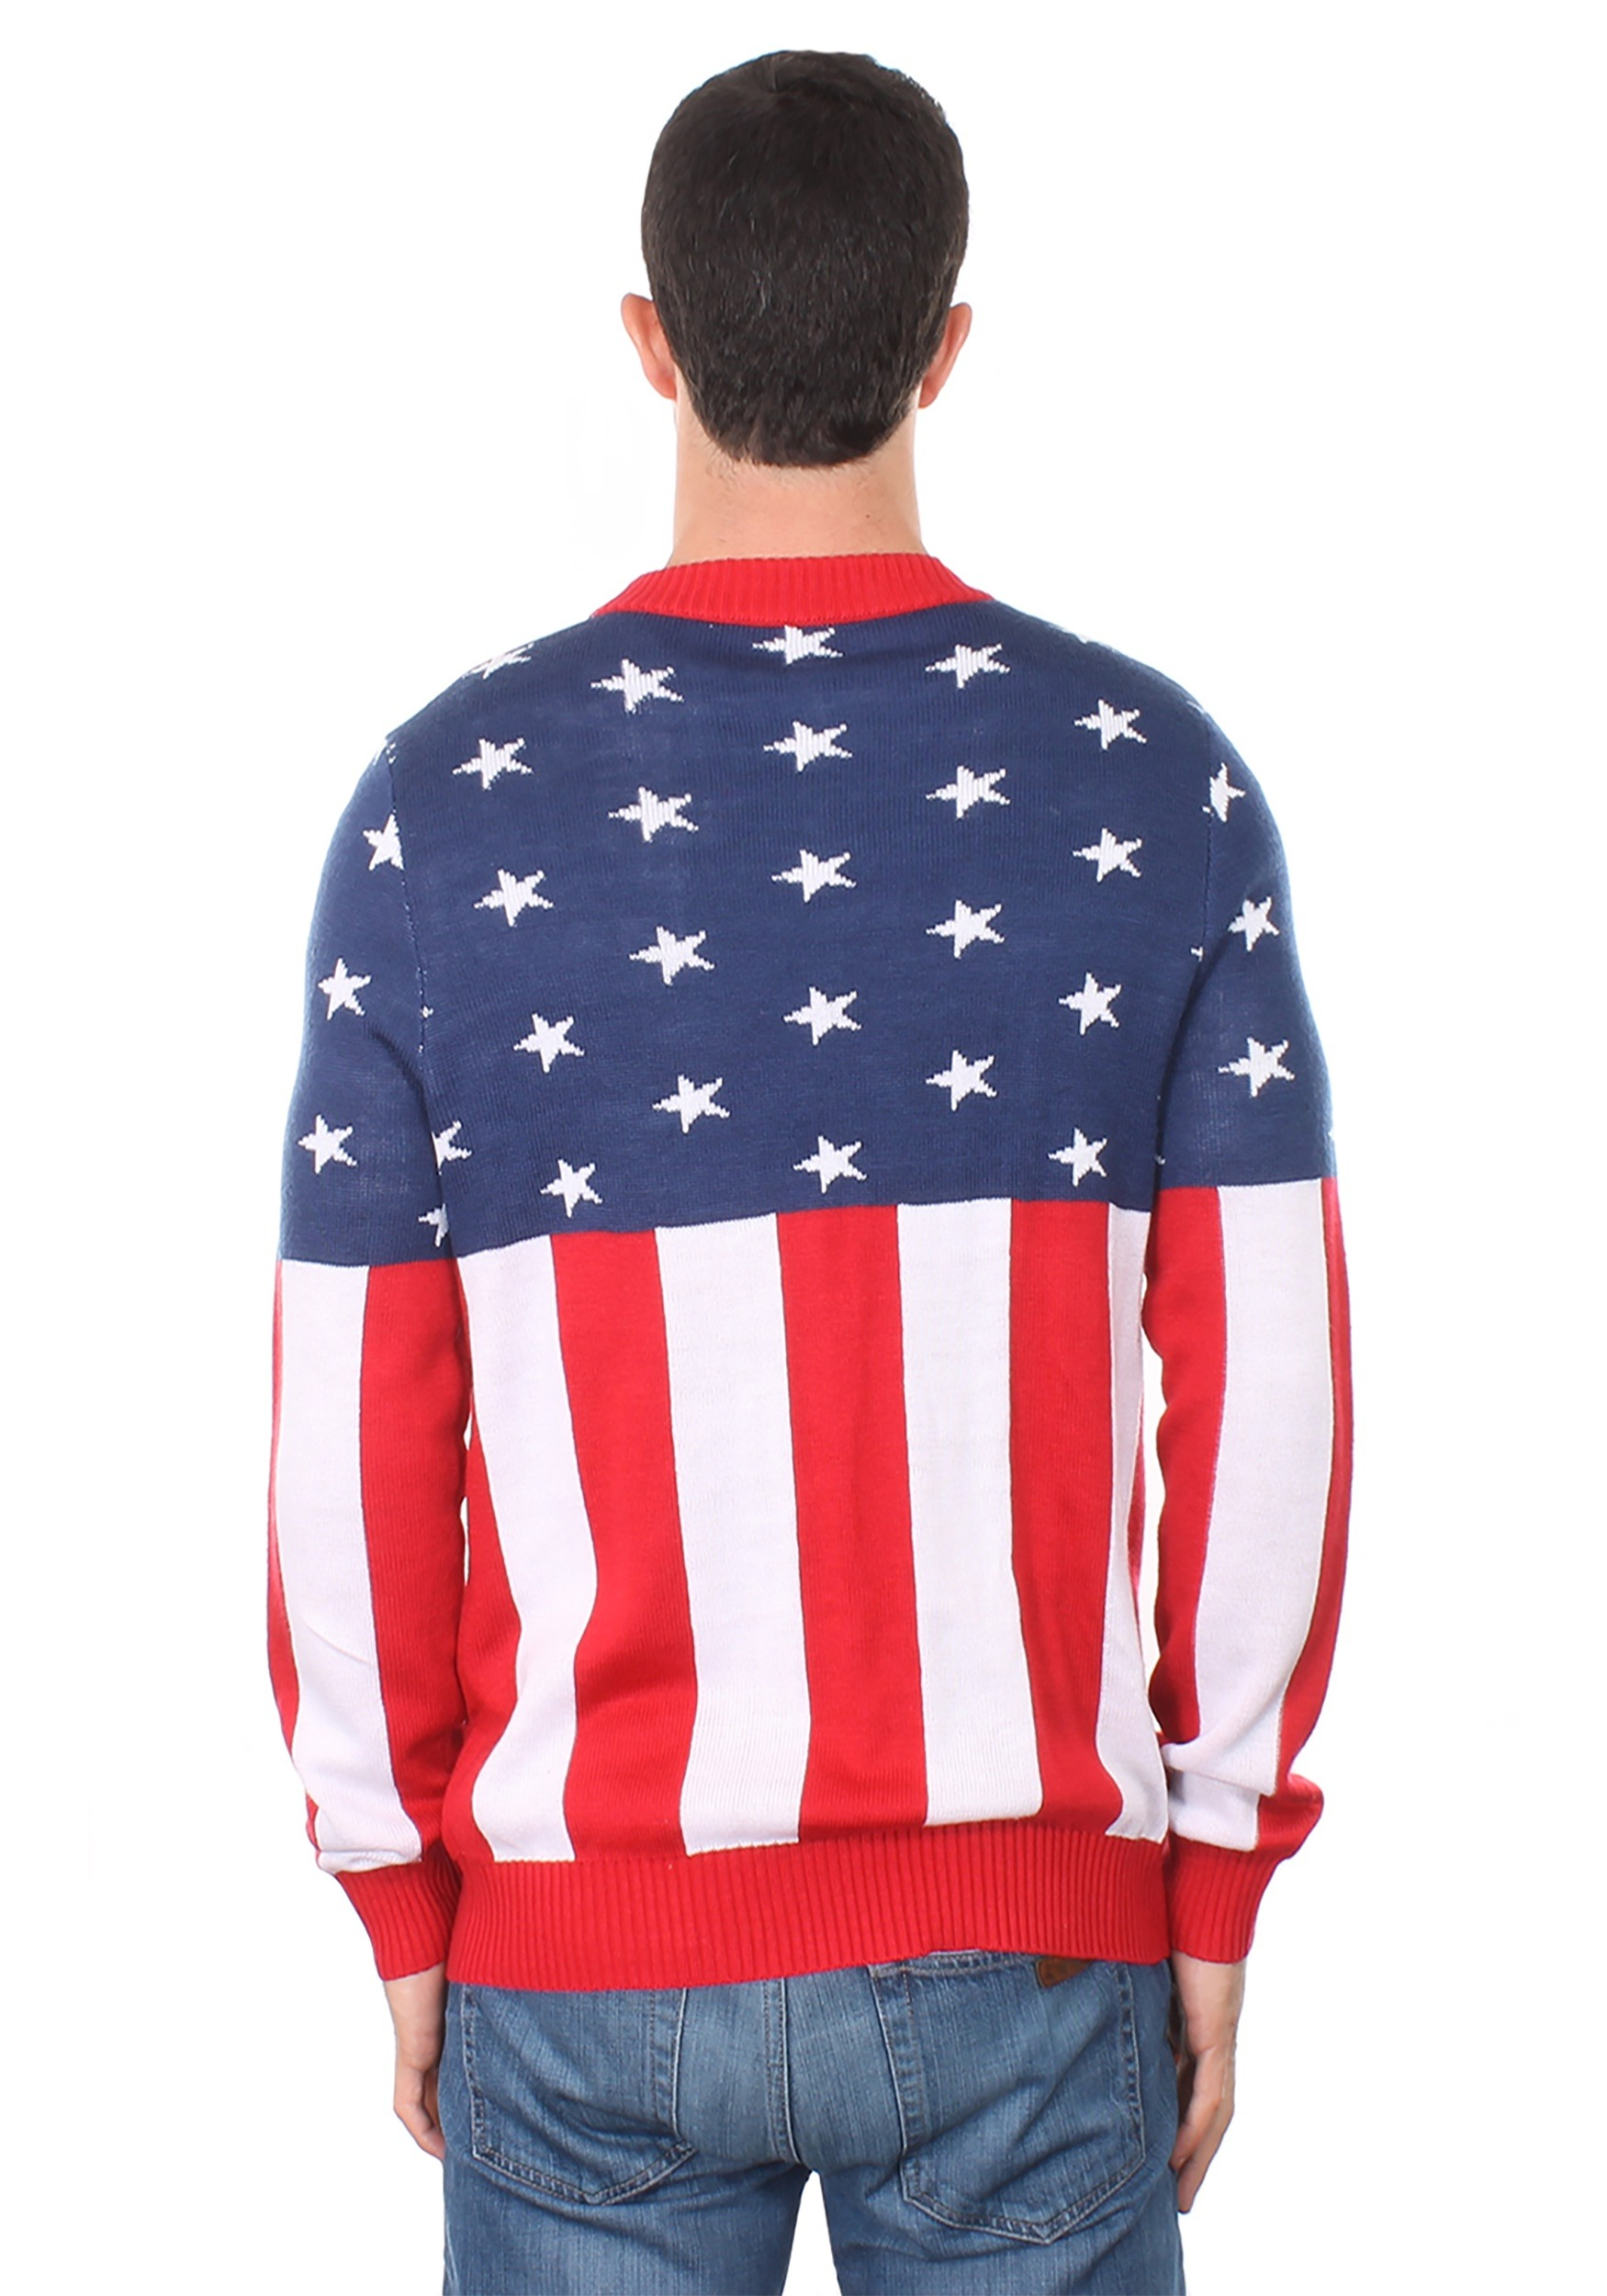 cdae667e29e ... Men s Tipsy Elves American Flag Holdiay Sweater